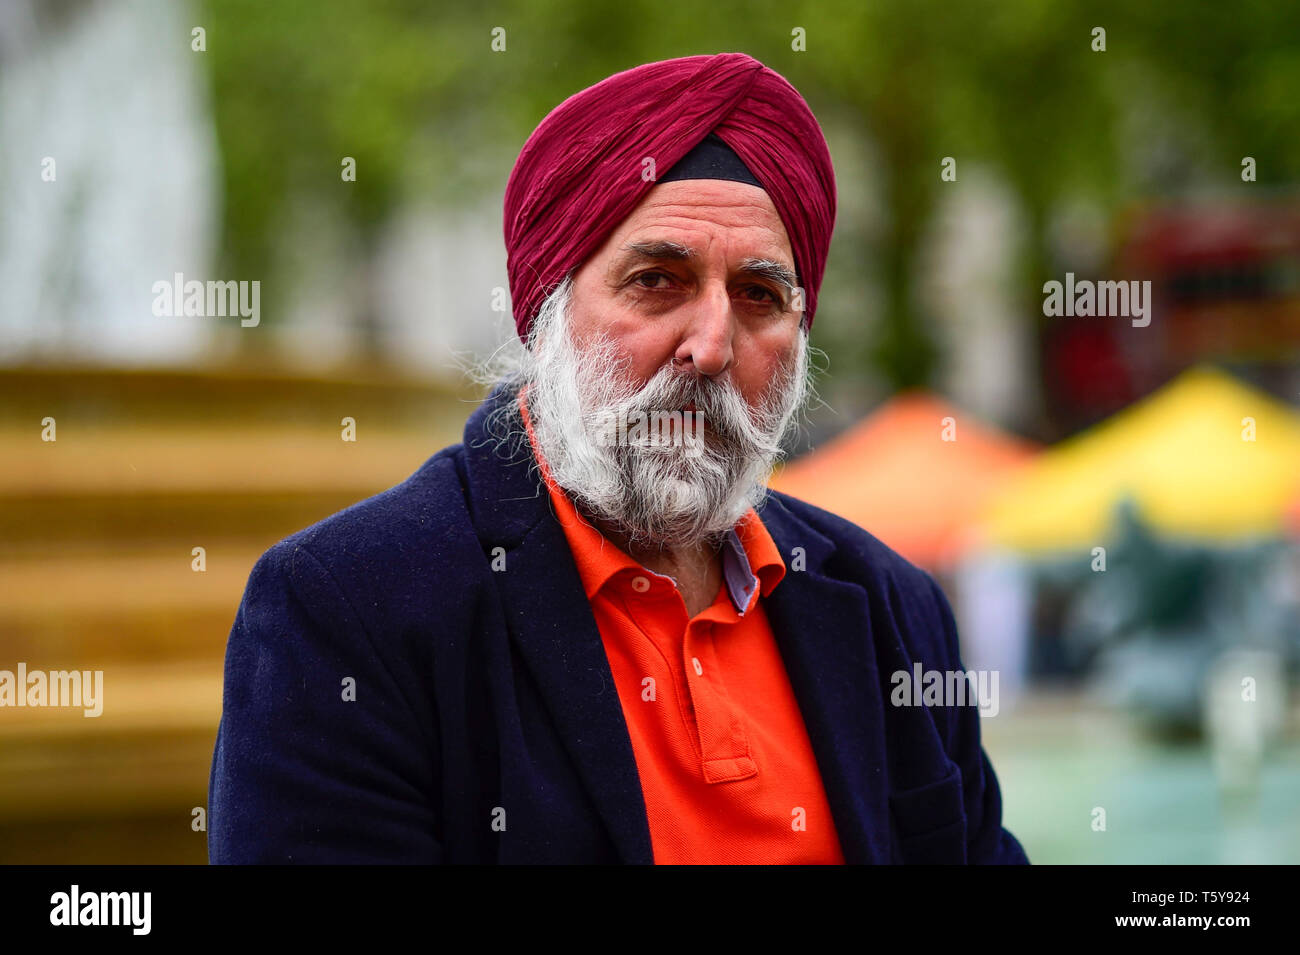 London, UK.  27 April 2019.  A man poses for a photo during the festival of Vaisakhi in Trafalgar Square, hosted by the Mayor of London.  For Sikhs and Punjabis, the festival celebrates the spring harvest and commemorates the founding of the Khalsa community over 300 years ago.  Credit: Stephen Chung / Alamy Live News - Stock Image